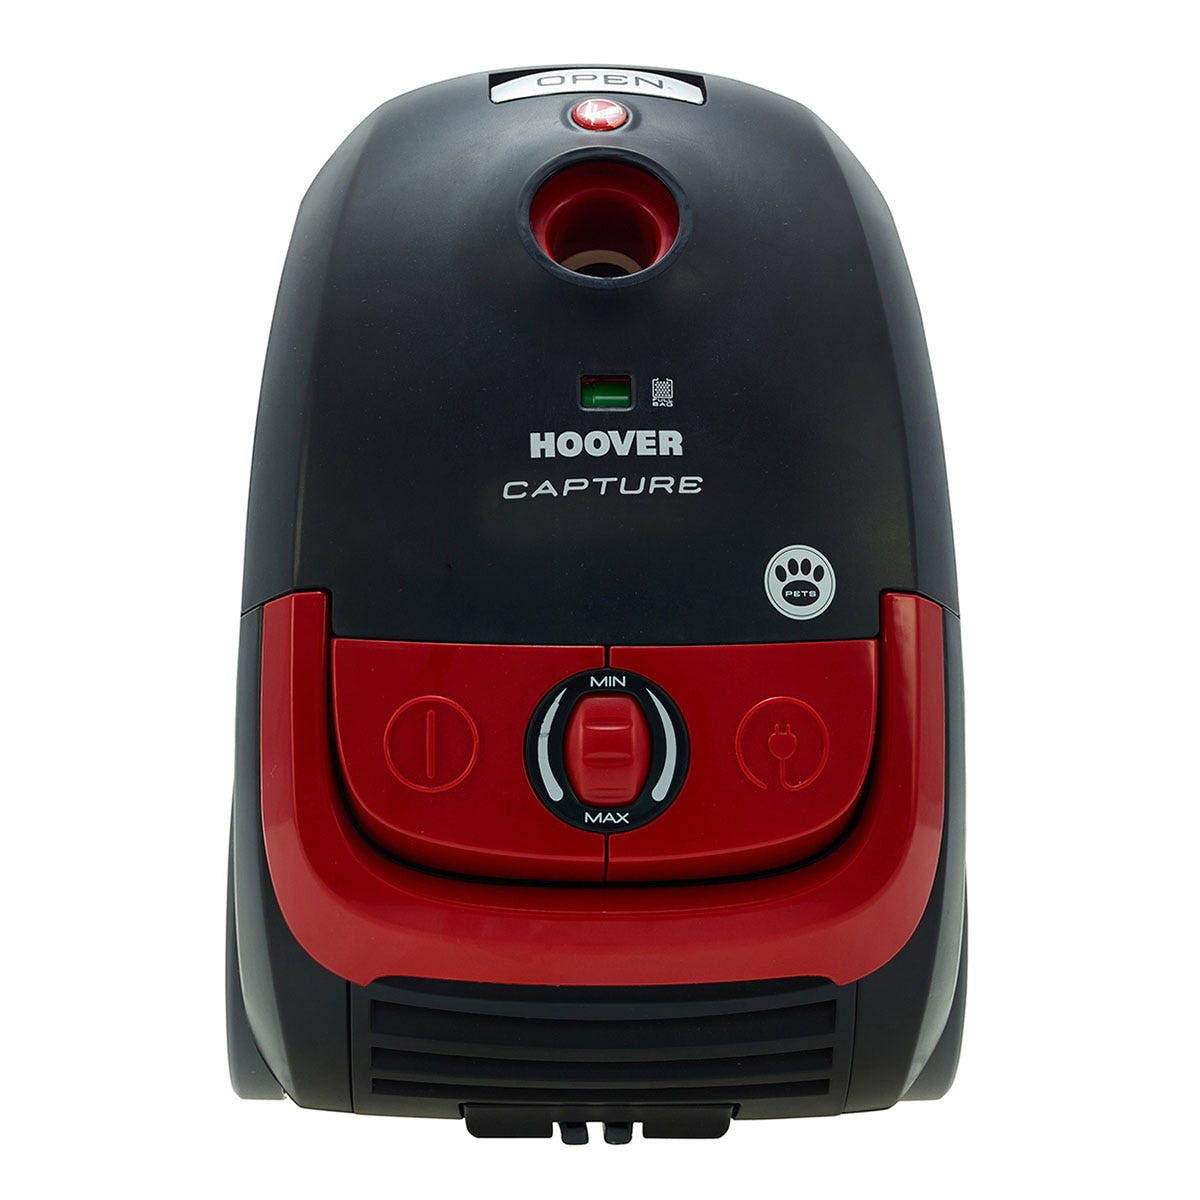 Image of Hoover Capture Bagged Pets Cylinder Vacuum Cleaner - Red & Black